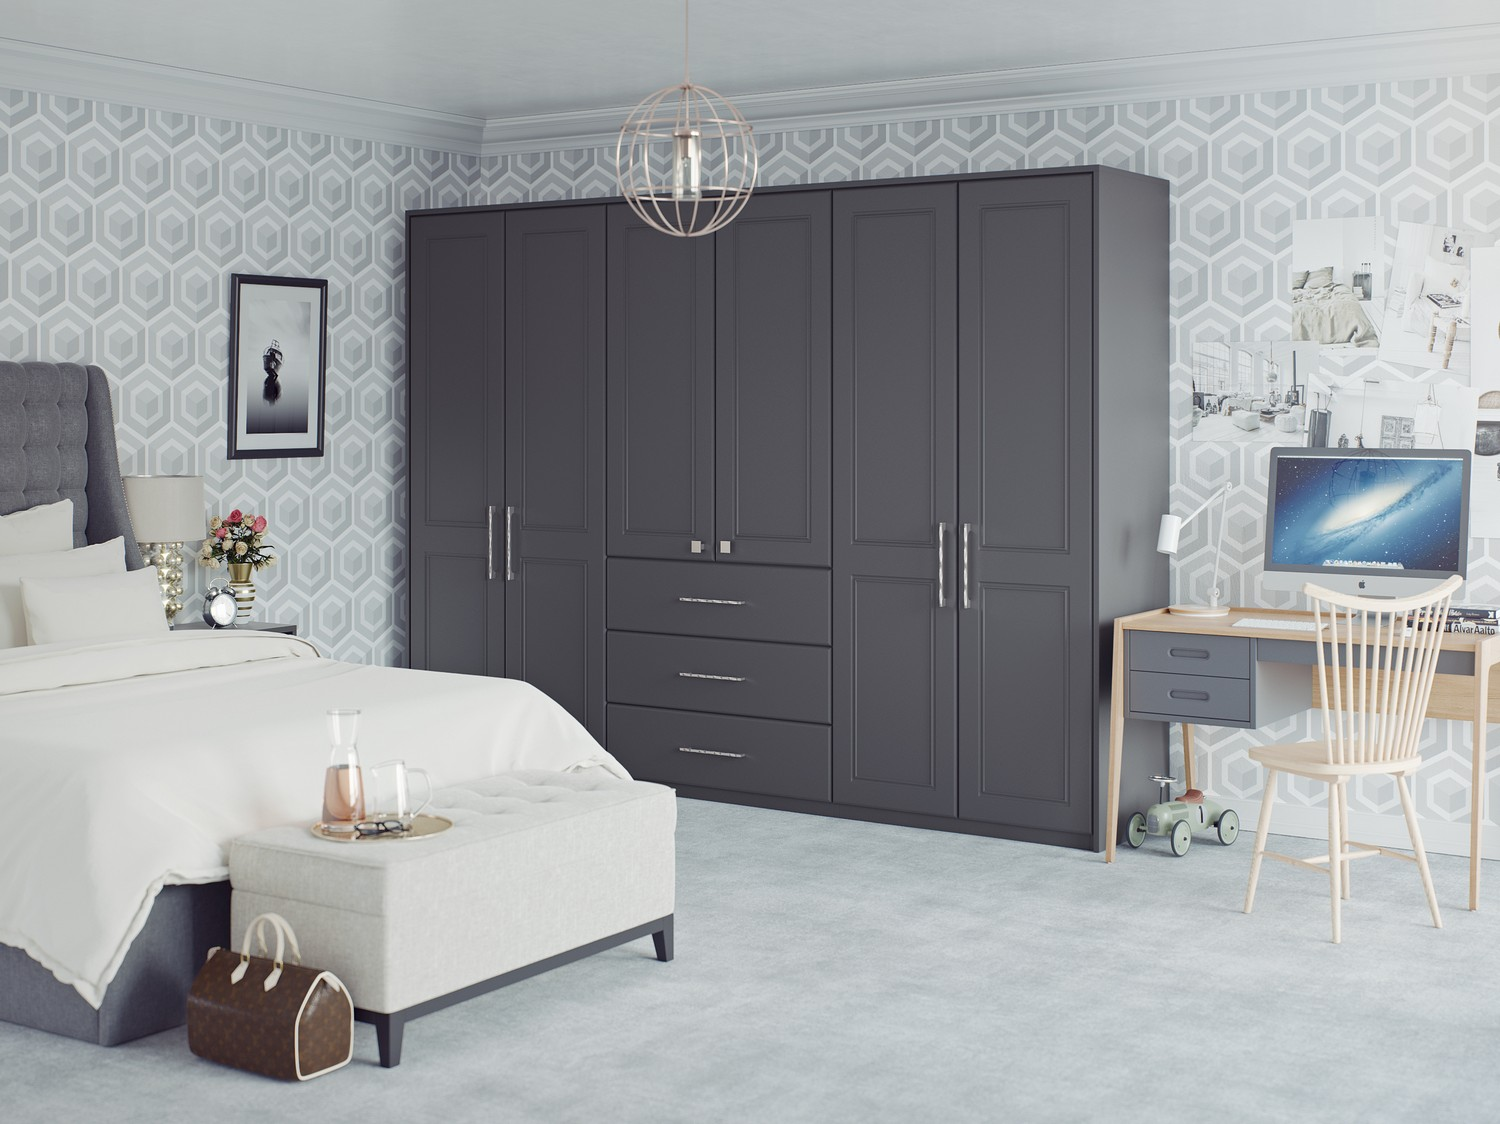 Matt graphite fitted wardrobes for our client in Heswall, Wirral. The fitted wardrobe features three individual wardrobes and a draw set, combined with dual handle styles this bedroom furniture is right on trend and gives a contemporary edge to any bedroom.